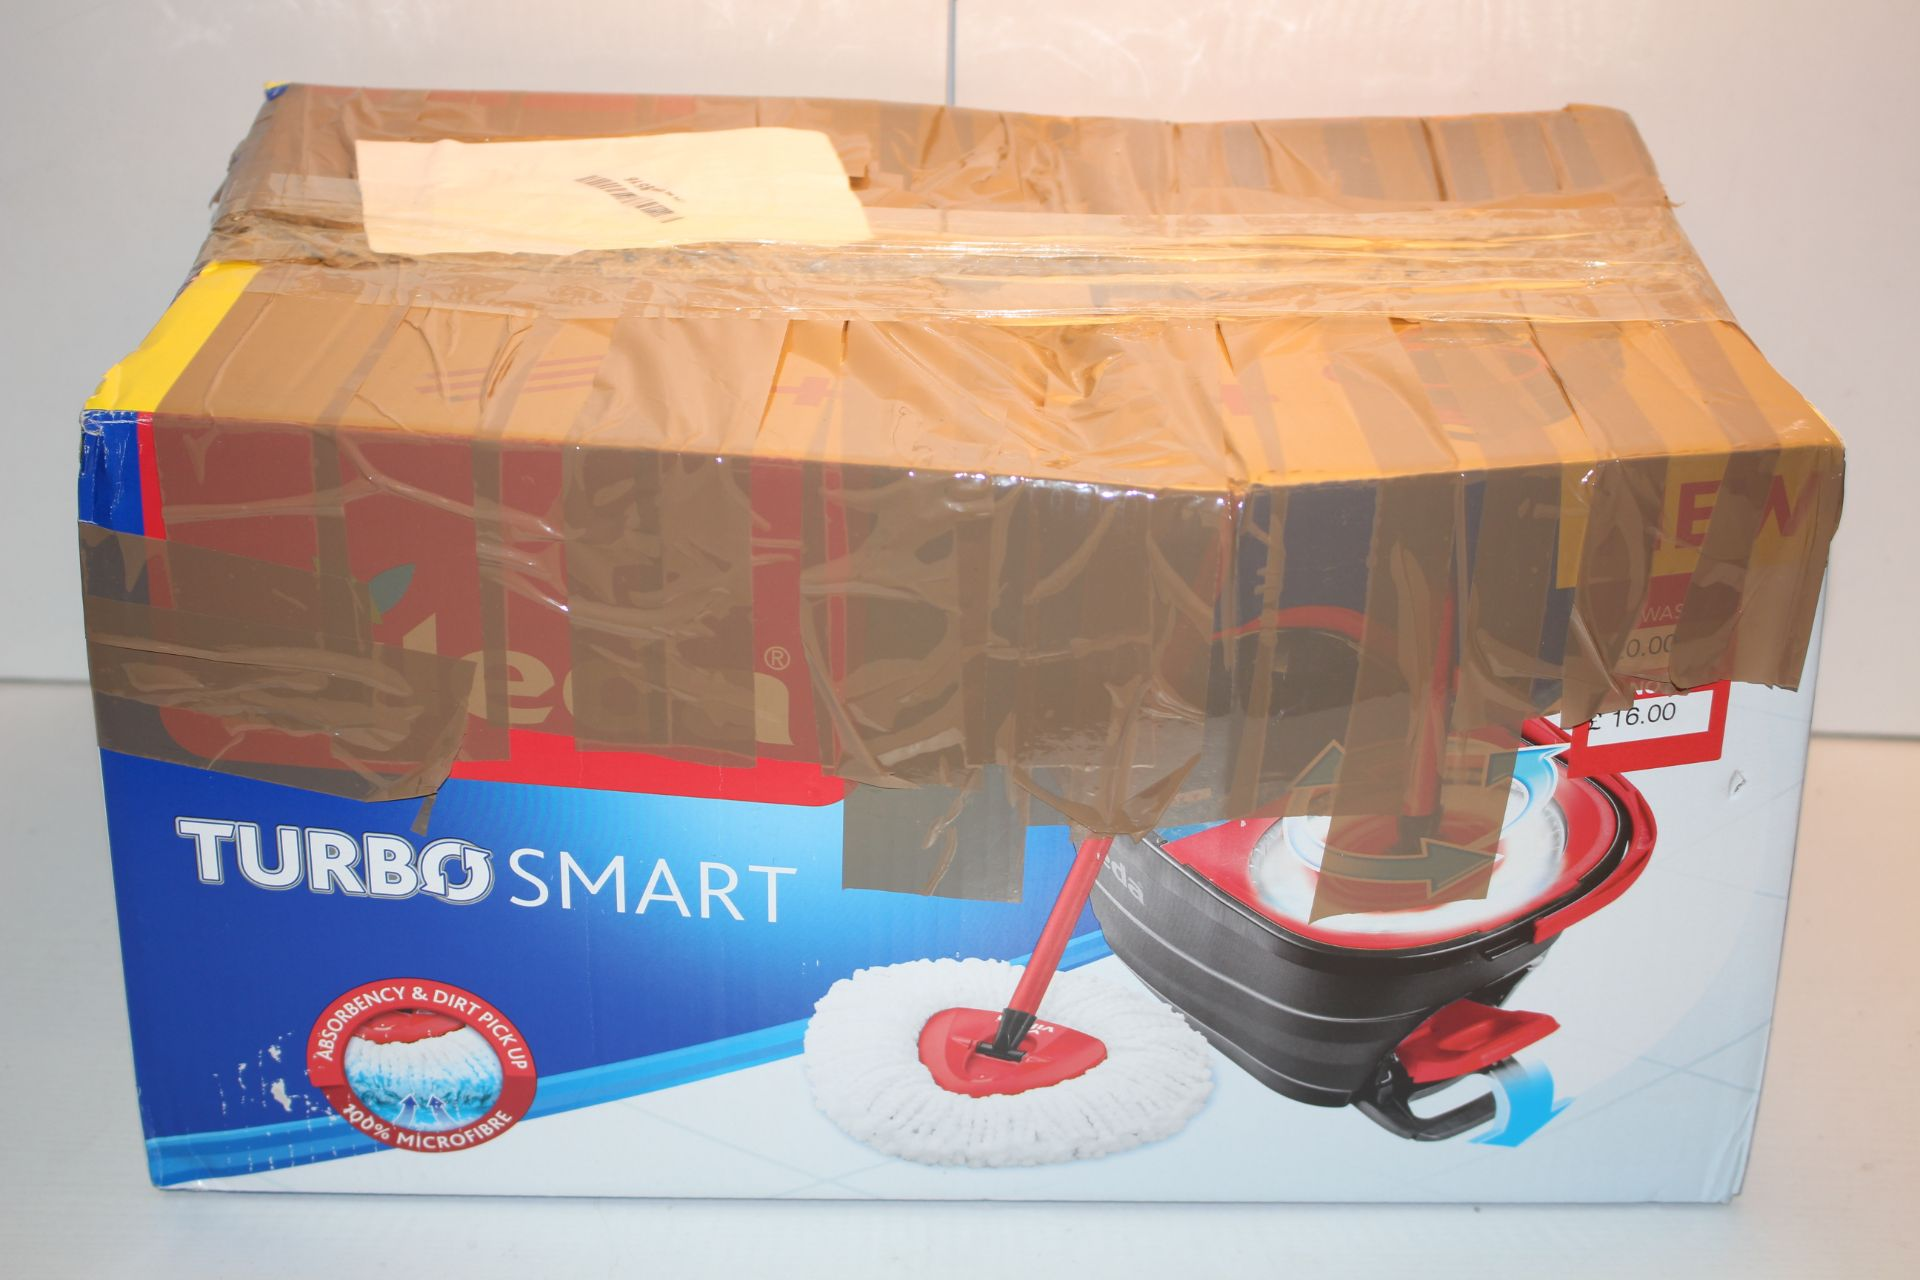 BOXED VILEDA TURBO SMART CLEANING SYSTEM RRP £24.99Condition ReportAppraisal Available on Request-